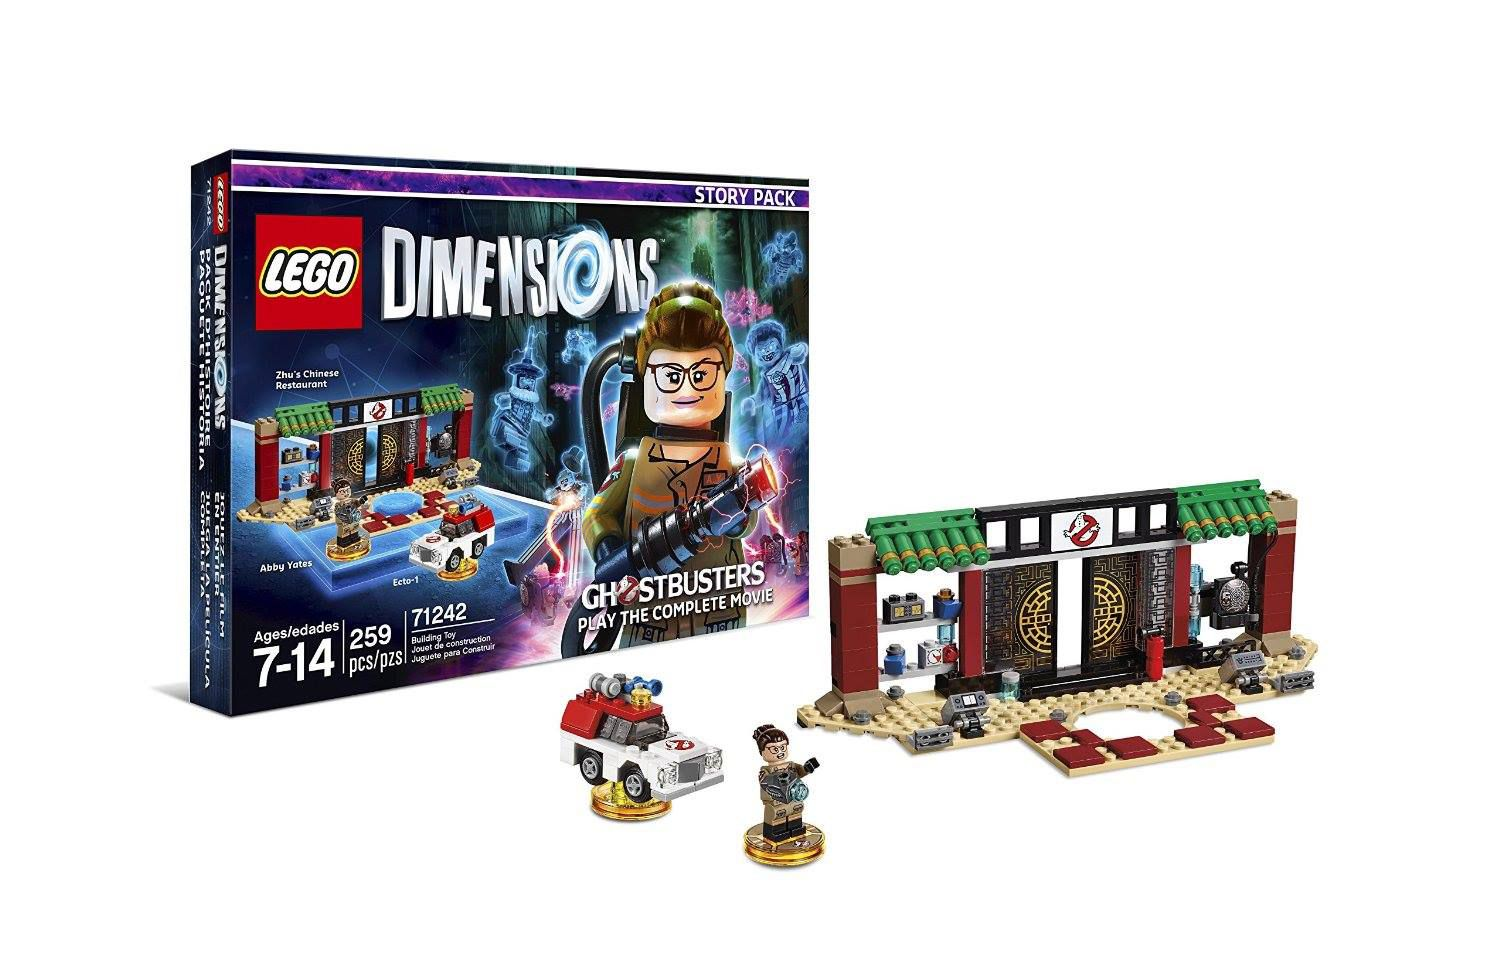 LEGO Dimensions 71242 Story Pack New Ghostbusters LEGO_DIMENSIONS_71242_Ghostbusters-Story_Pack-03.jpg